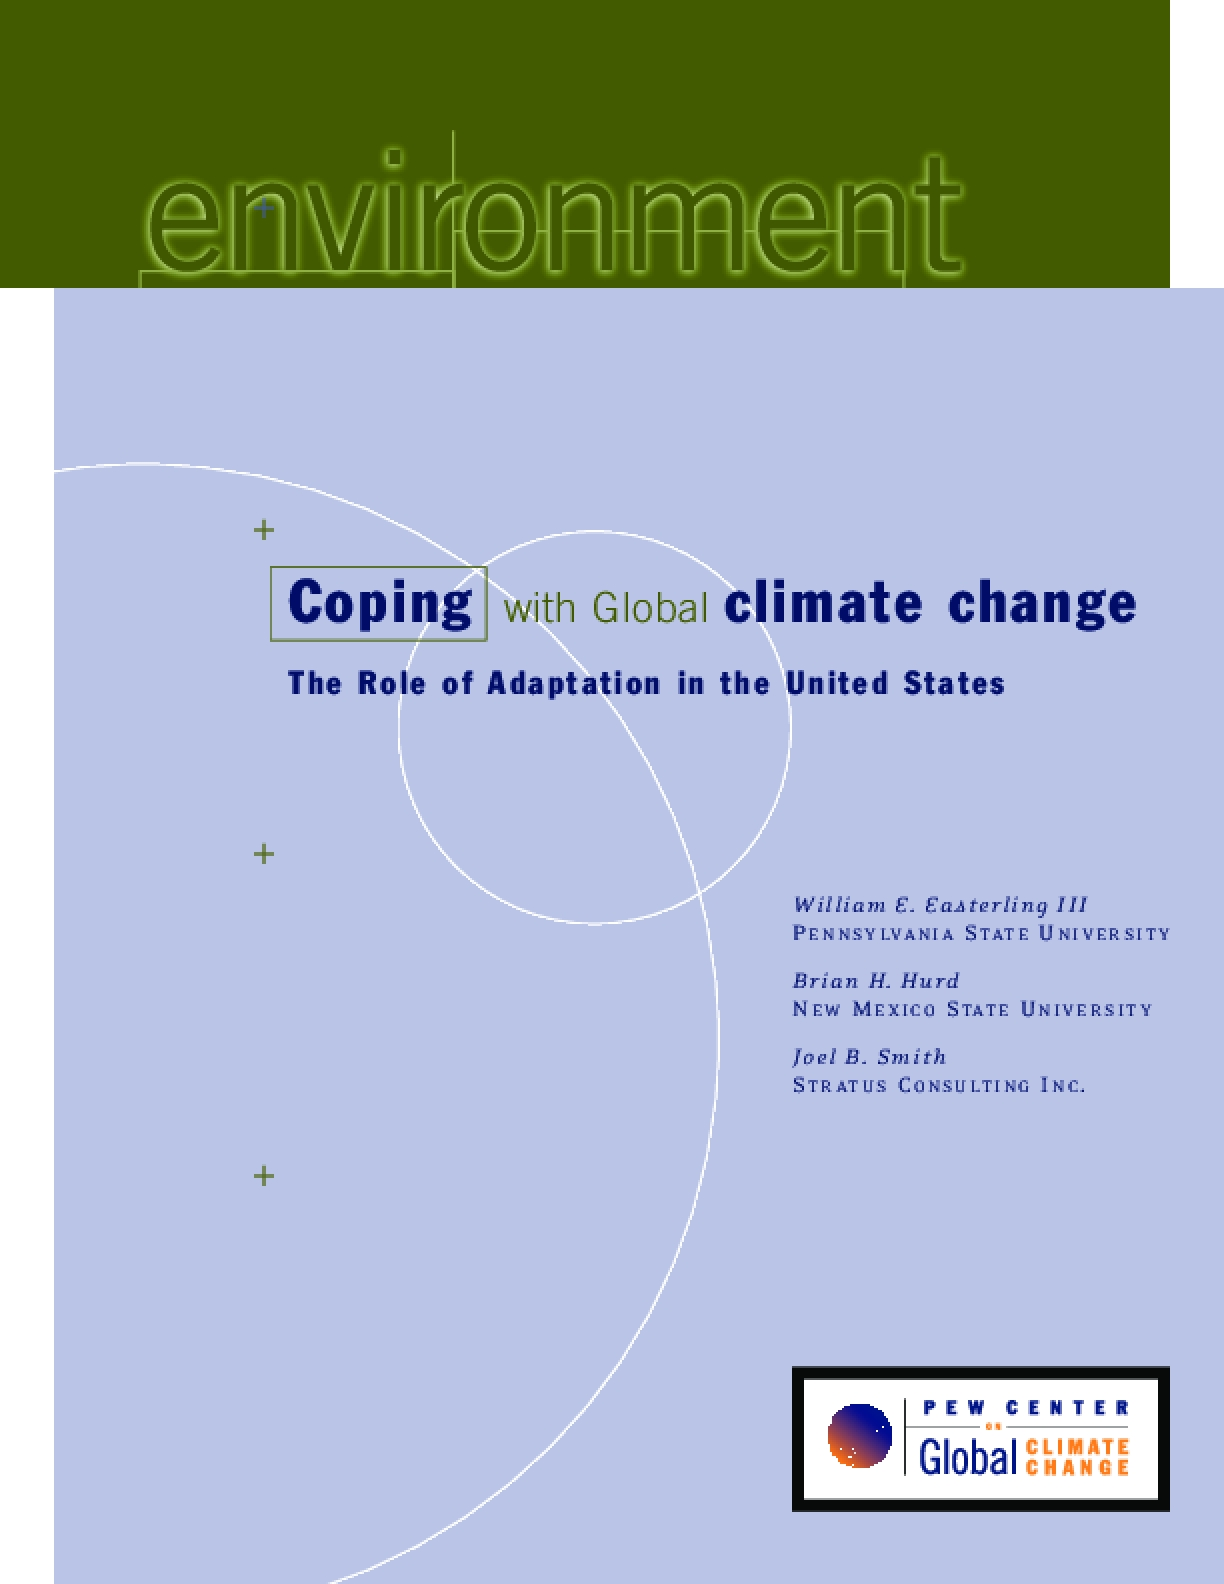 Coping With Global Climate Change: The Role of Adaptation in the United States